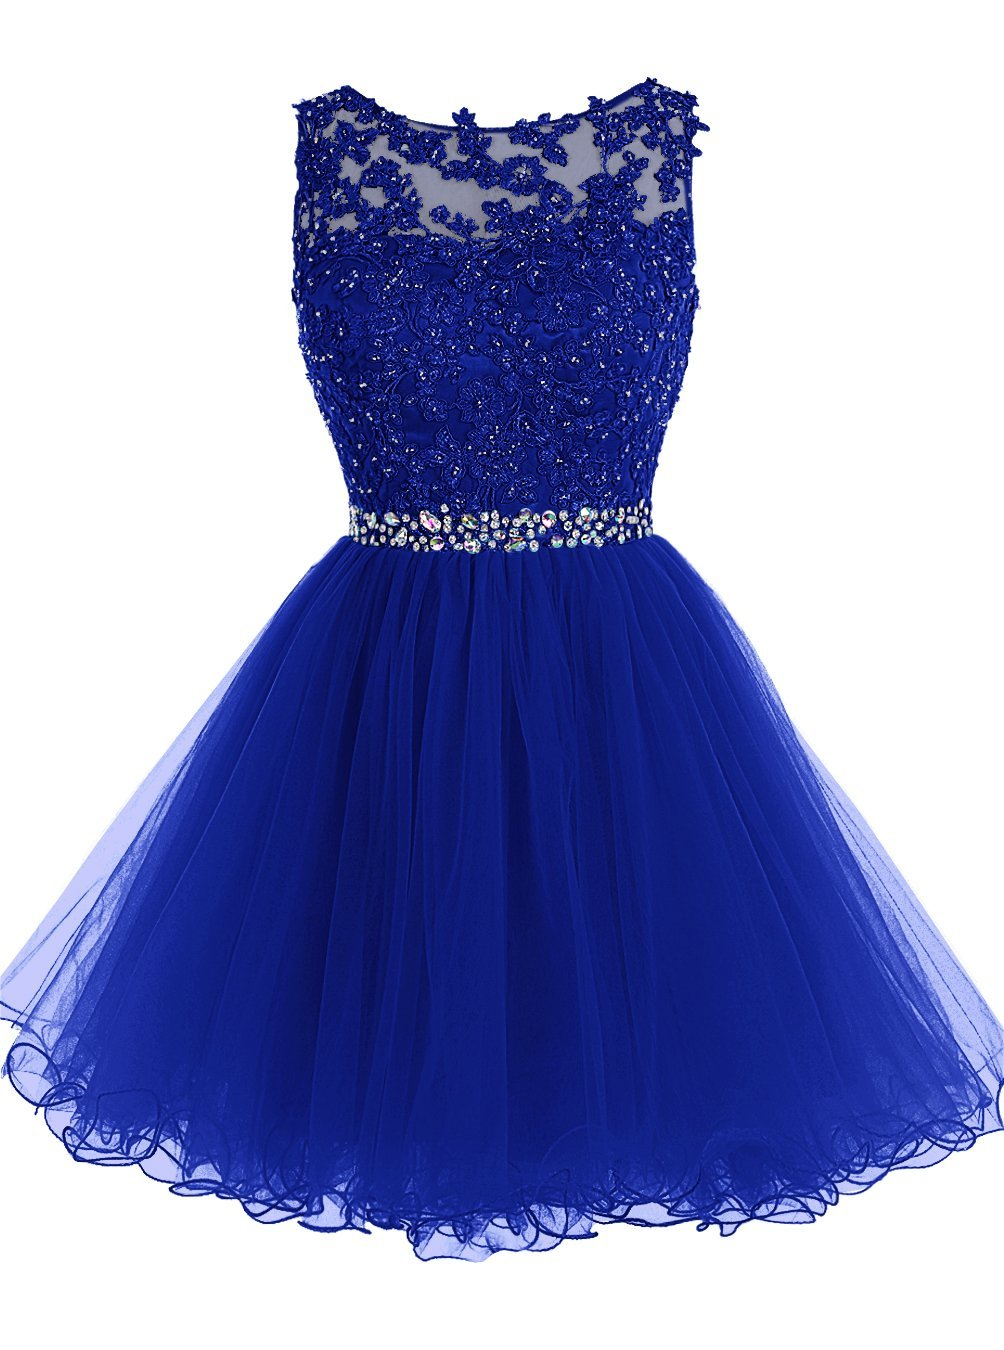 abf5ac6efef Royal Blue Prom Dress